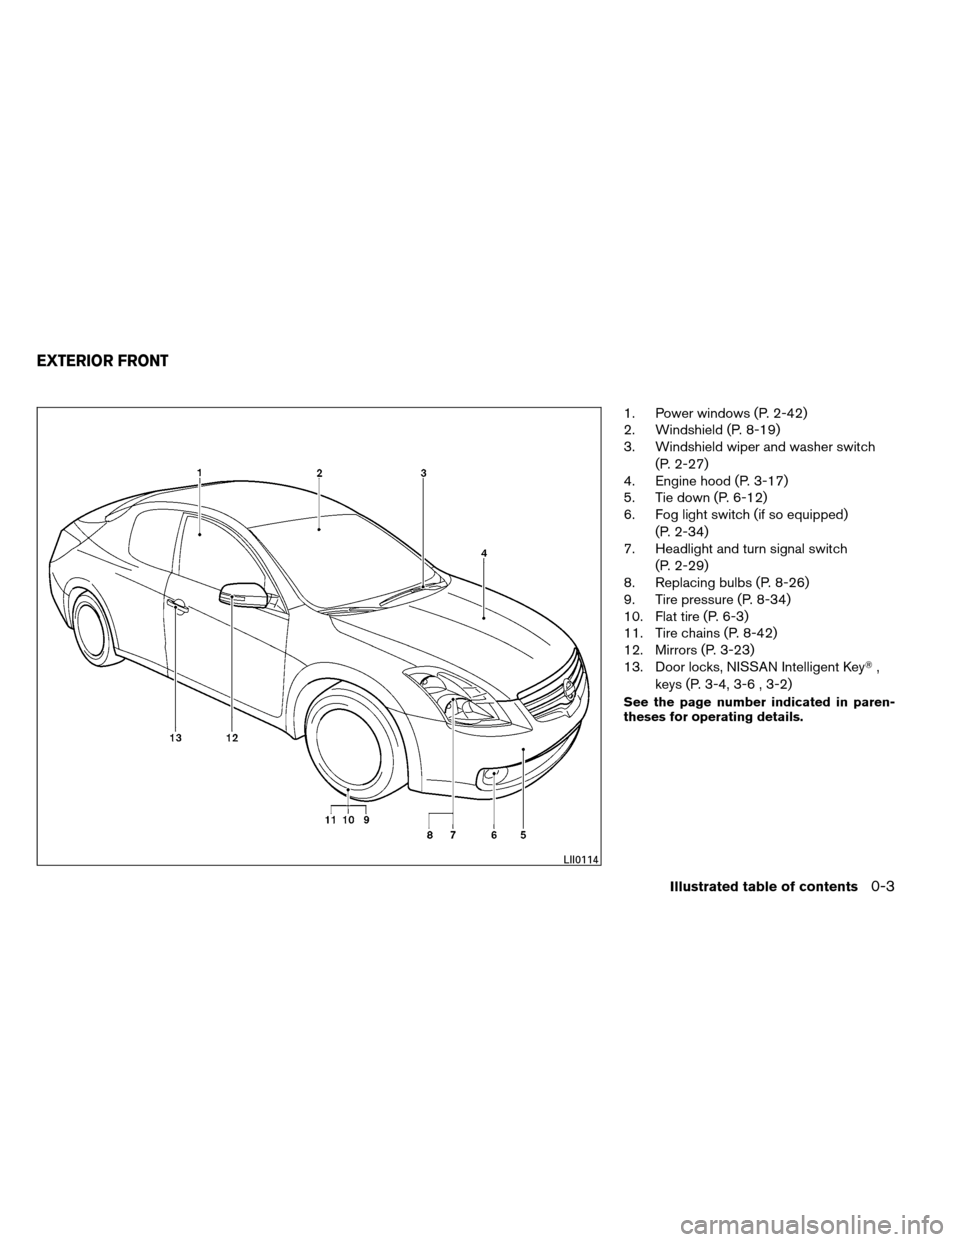 2013 NISSAN ALTIMA SERVICE MANUAL - Auto Electrical Wiring